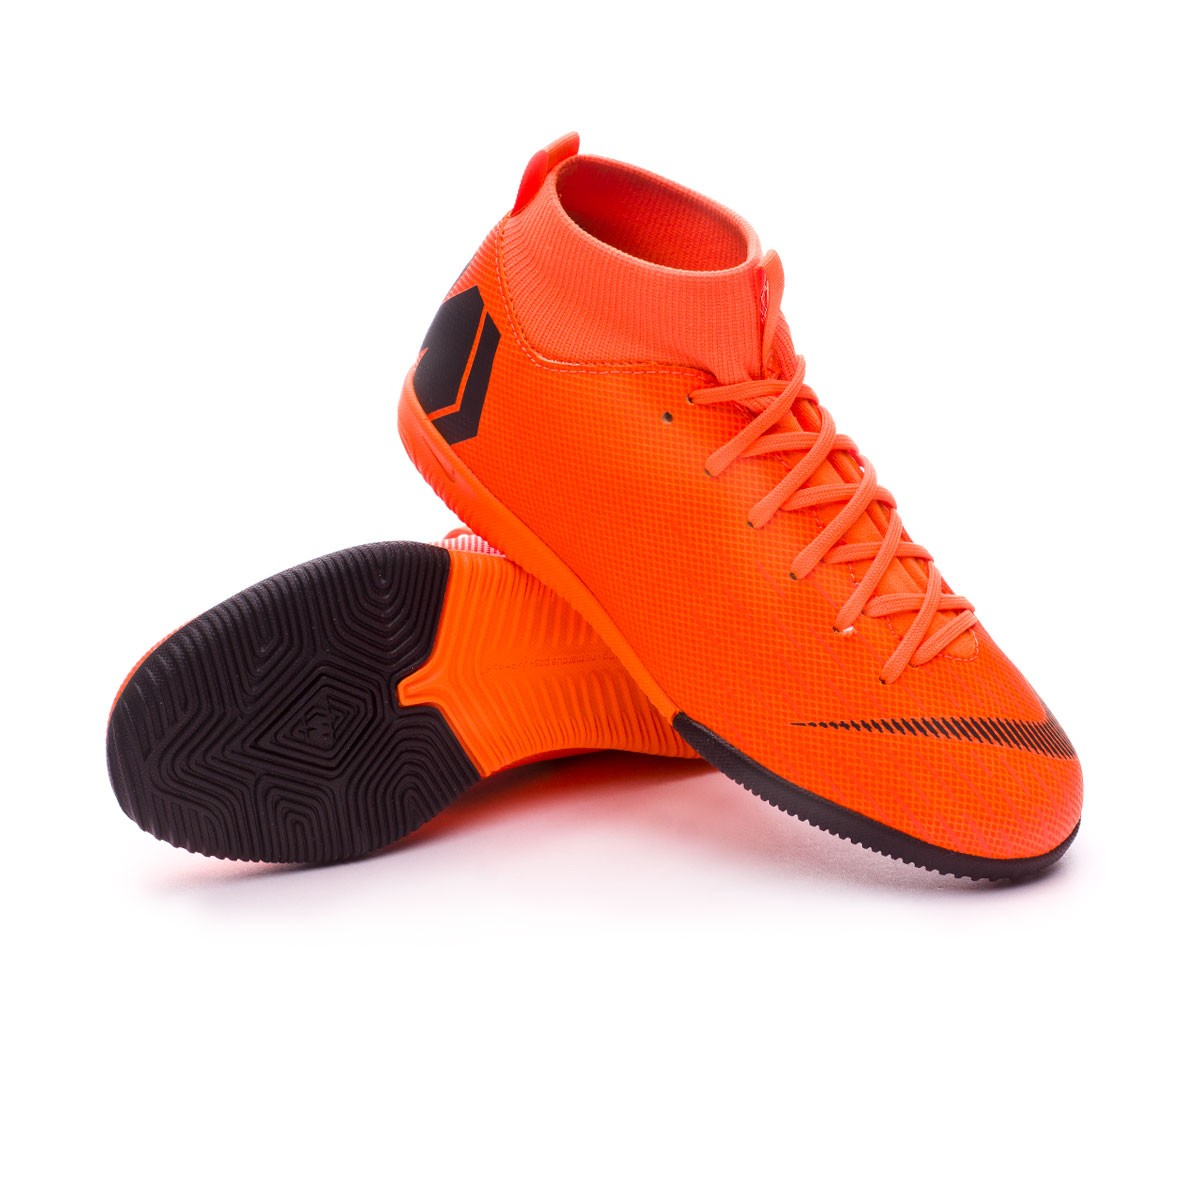 8b240ec97e8a Futsal Boot Nike Kids Mercurial SuperflyX VI Academy GS IC Total ...